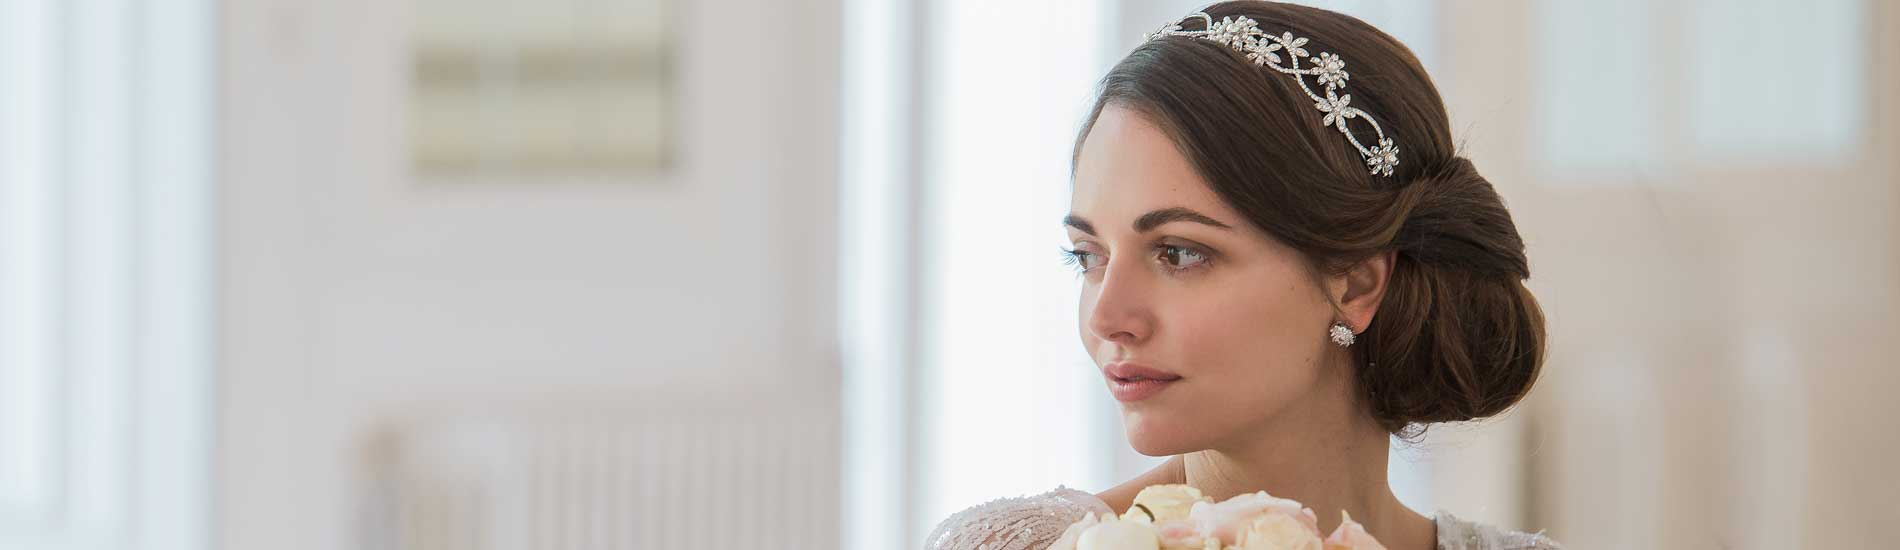 Beautiful Wedding Jewellery and Hair Accessories for Brides